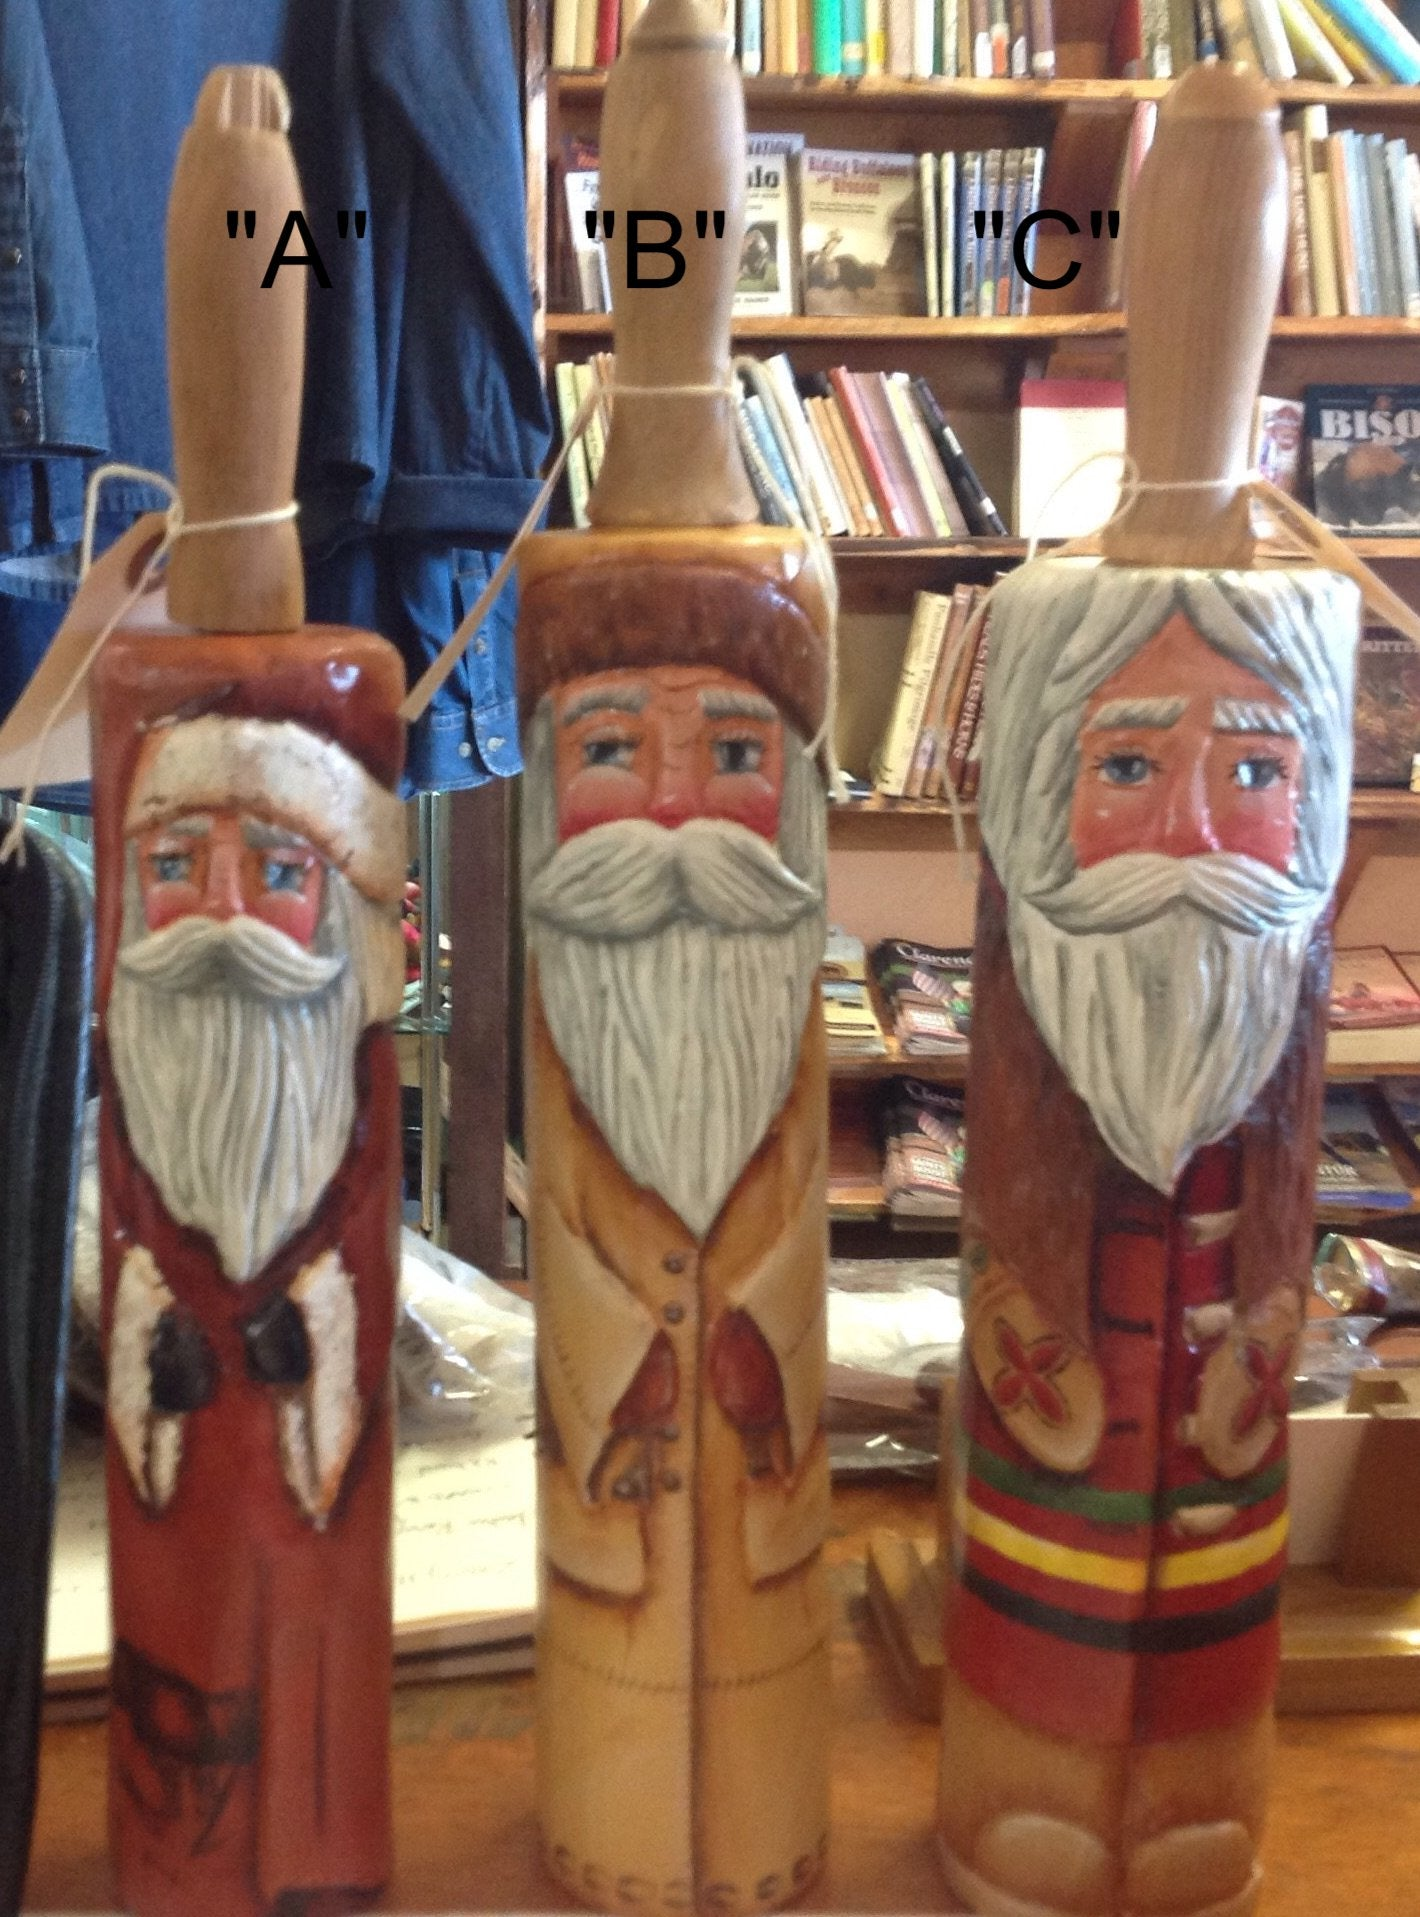 Buffalo Themed Santas ... Hand Carved Antique Rolling Pins from the Santa Smith Sisters of Amarillo, Texas